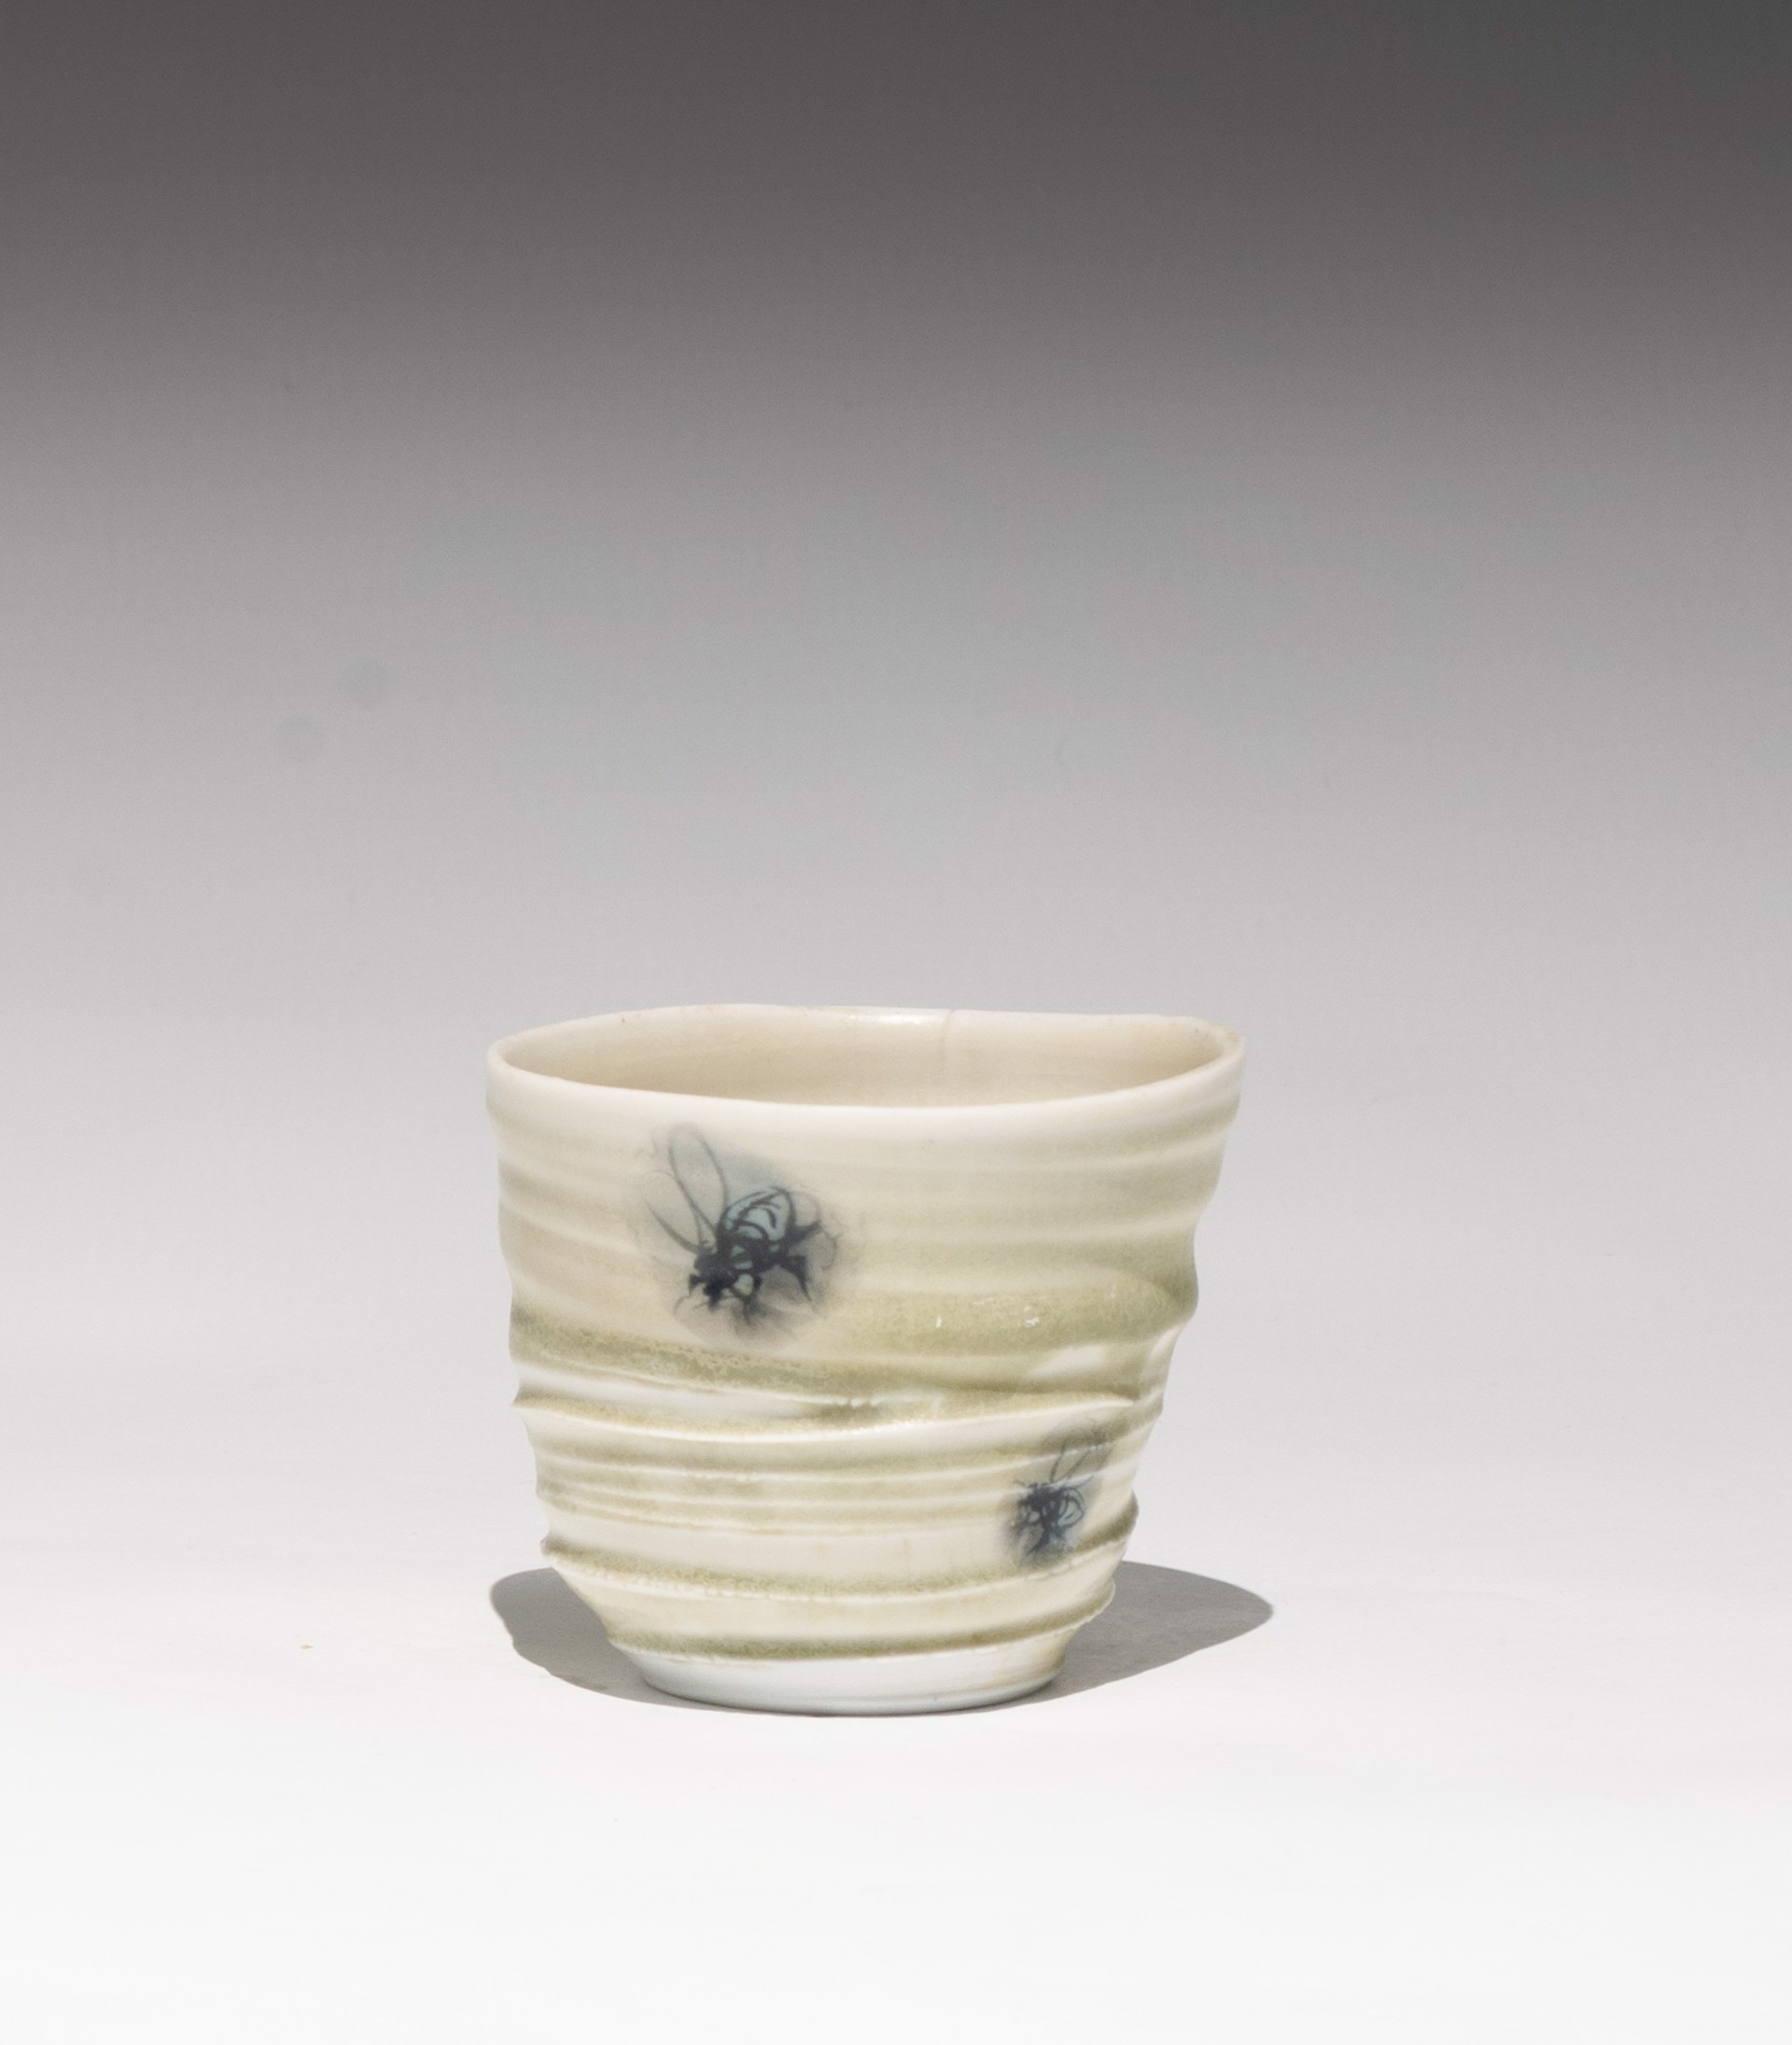 Insect Tea Bowl 5 by Caroline Bottom Anderson